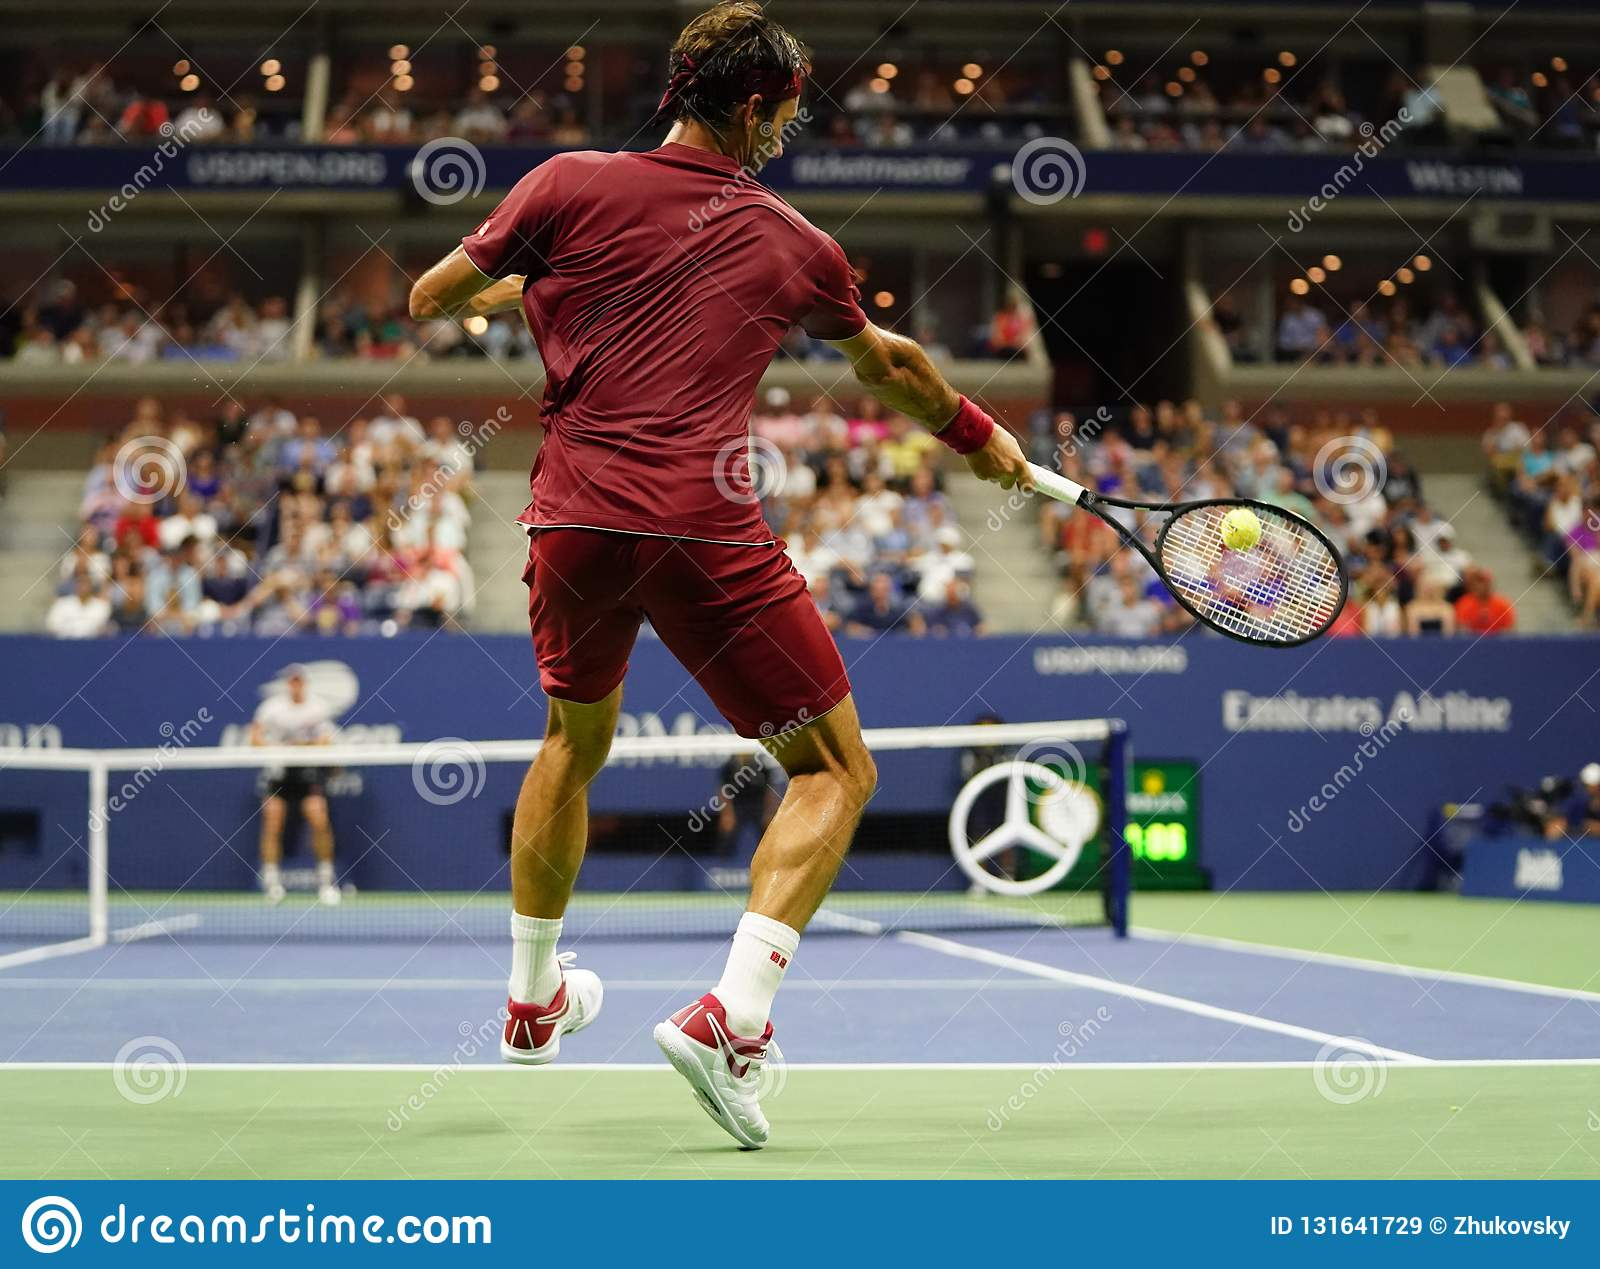 Geografia slealtà insufficiente  20-time Grand Slam Champion Roger Federer Of Switzerland In Action During  The 2018 US Open Round Of 16 Match Editorial Stock Image - Image of nike,  hard: 131641729